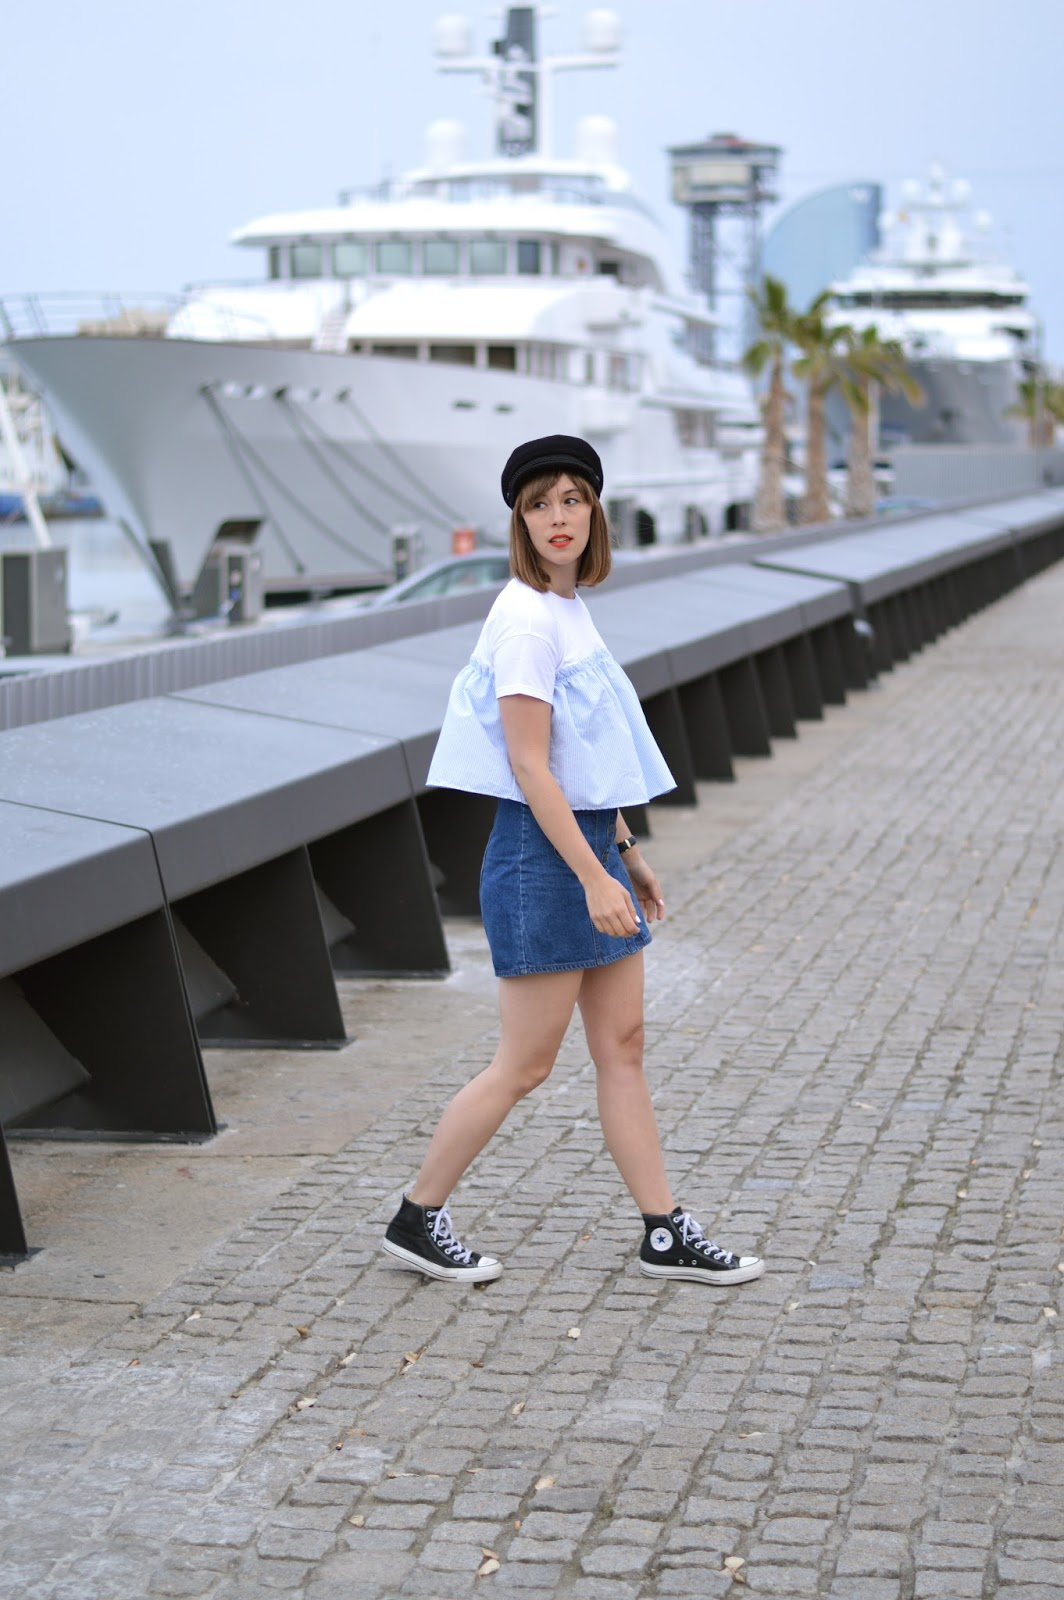 How to wear SS16 trends sailor stripes, ruffles and denim